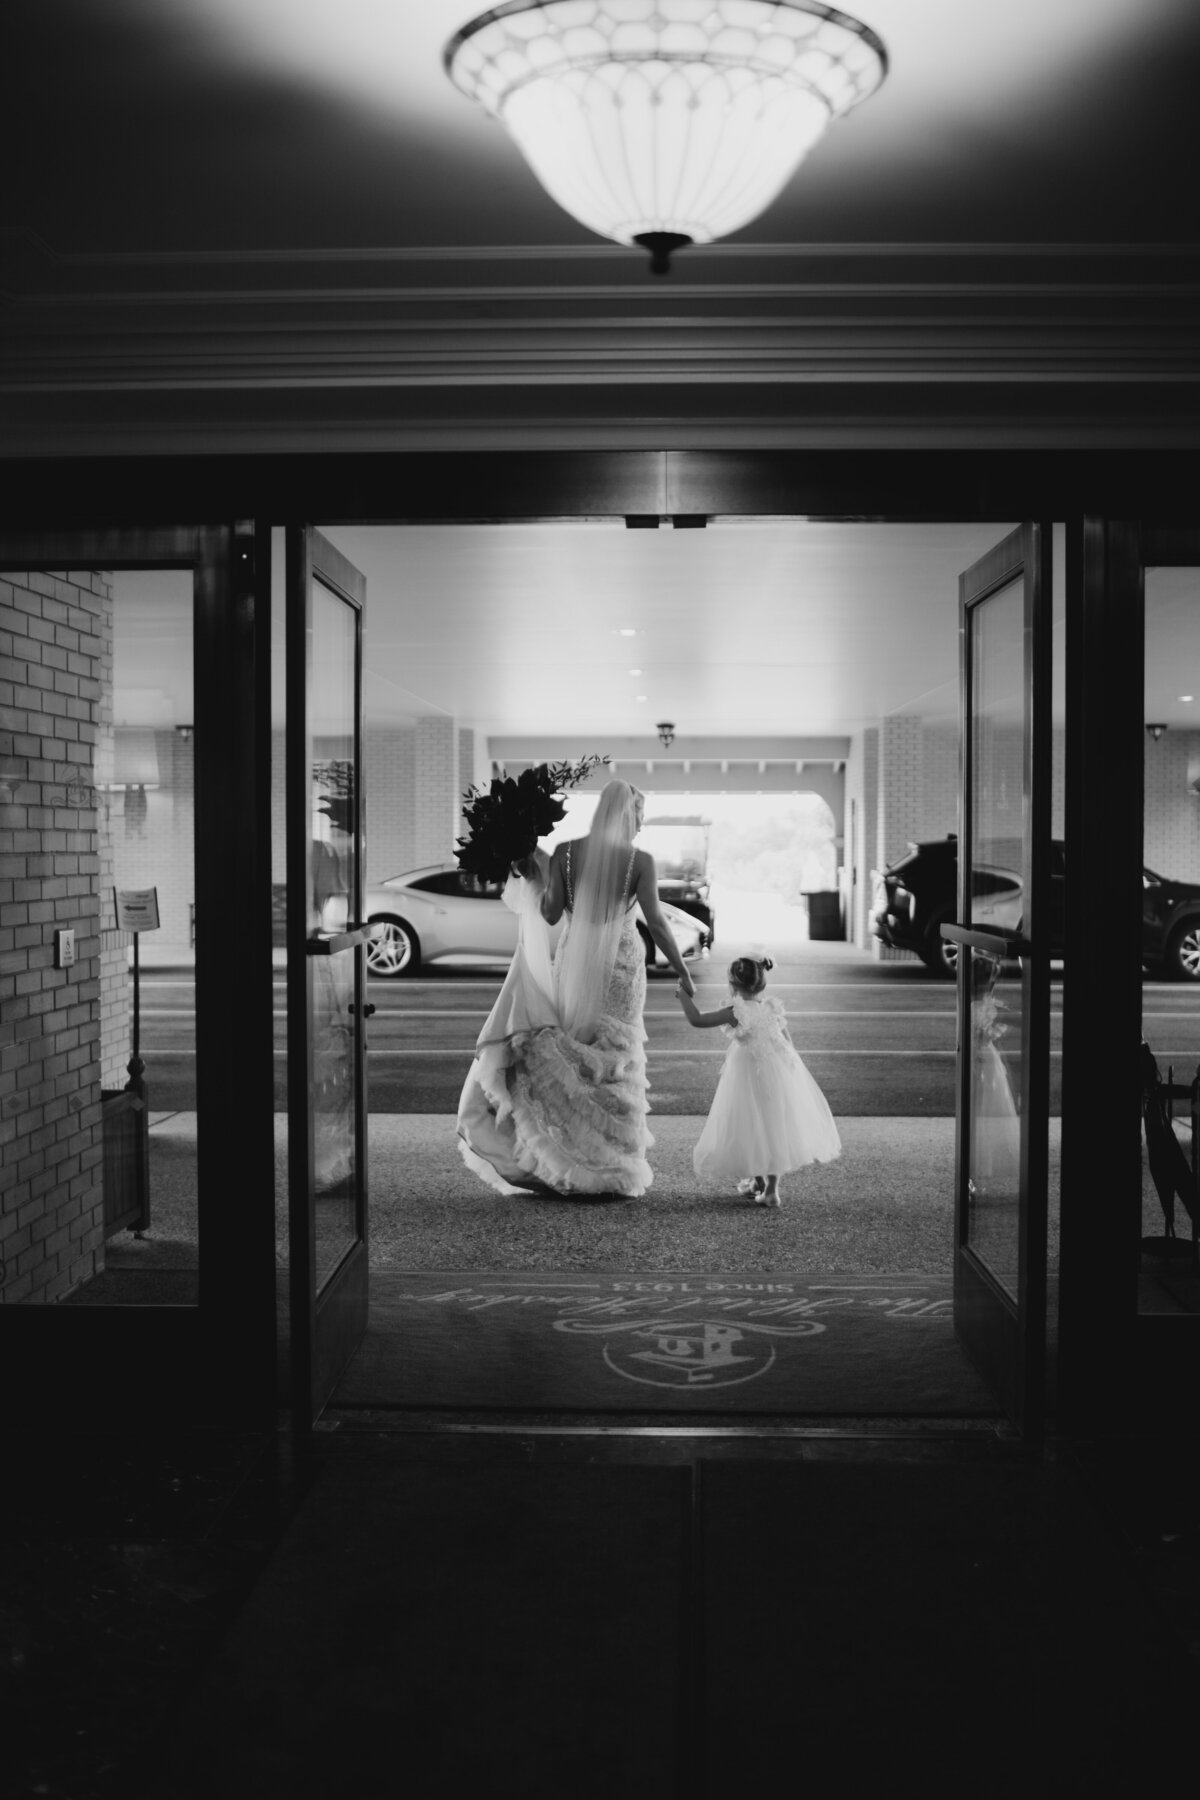 philadelphia-wedding-photographer-bobbi-phelps-photography-121